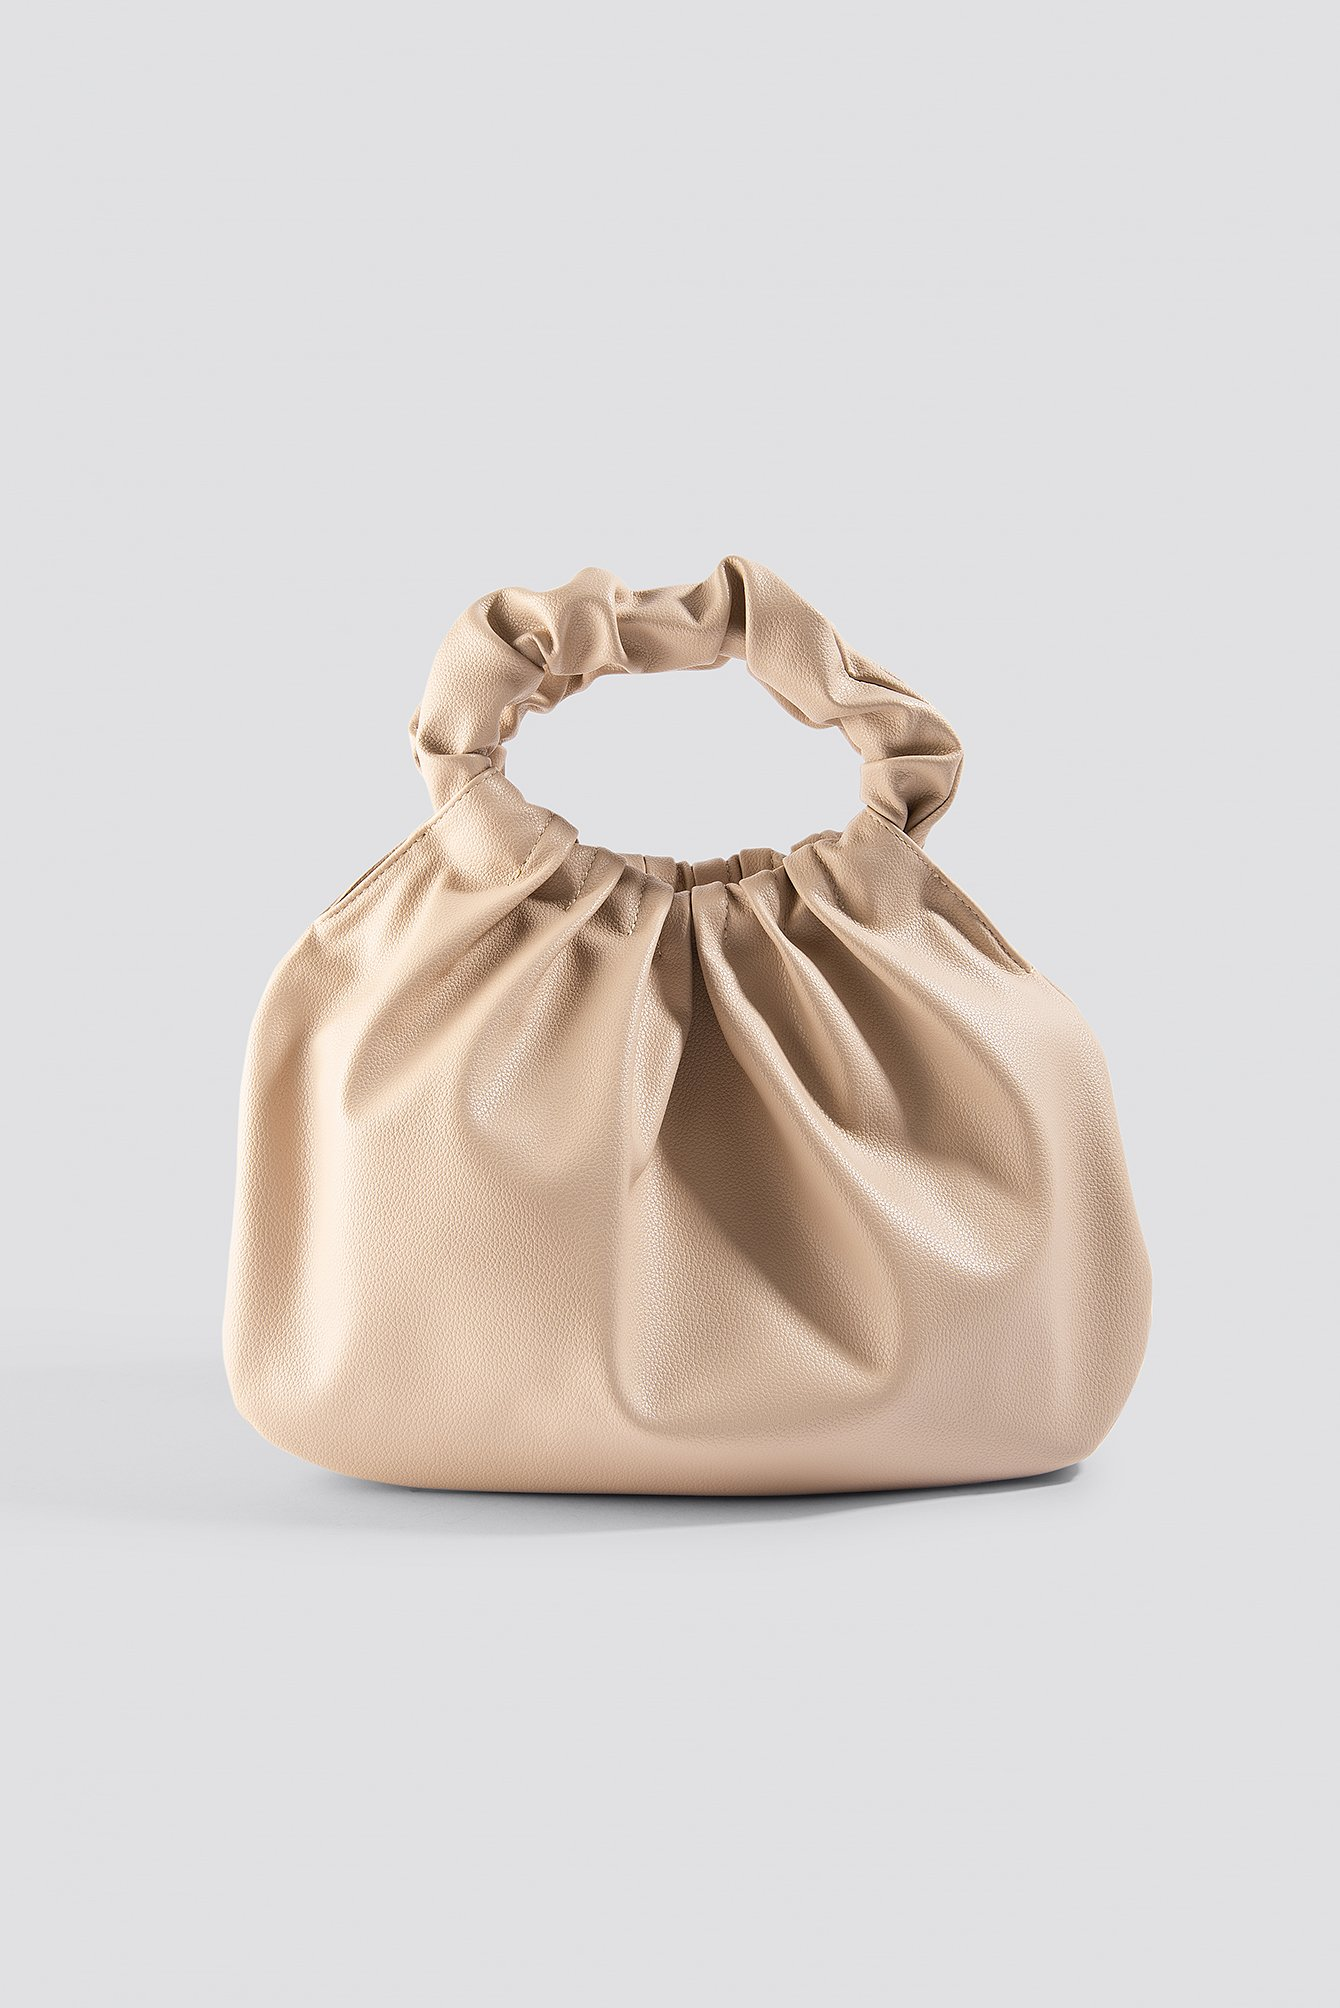 Ruffled Handle Handbag